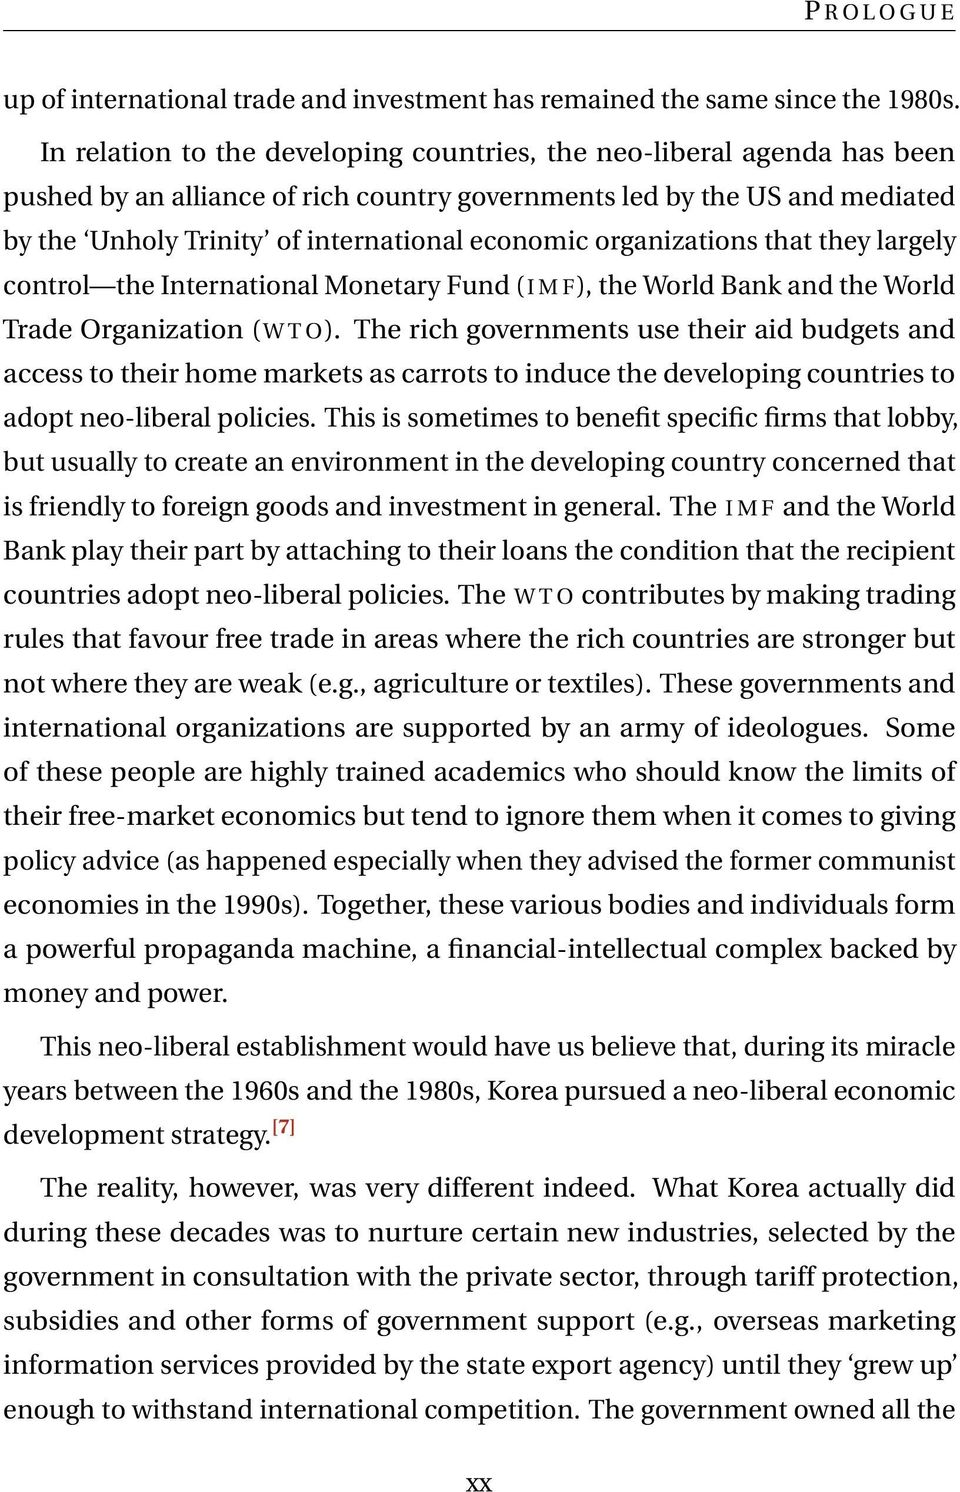 organizations that they largely control the International Monetary Fund (I M F), the World Bank and the World Trade Organization (W T O).